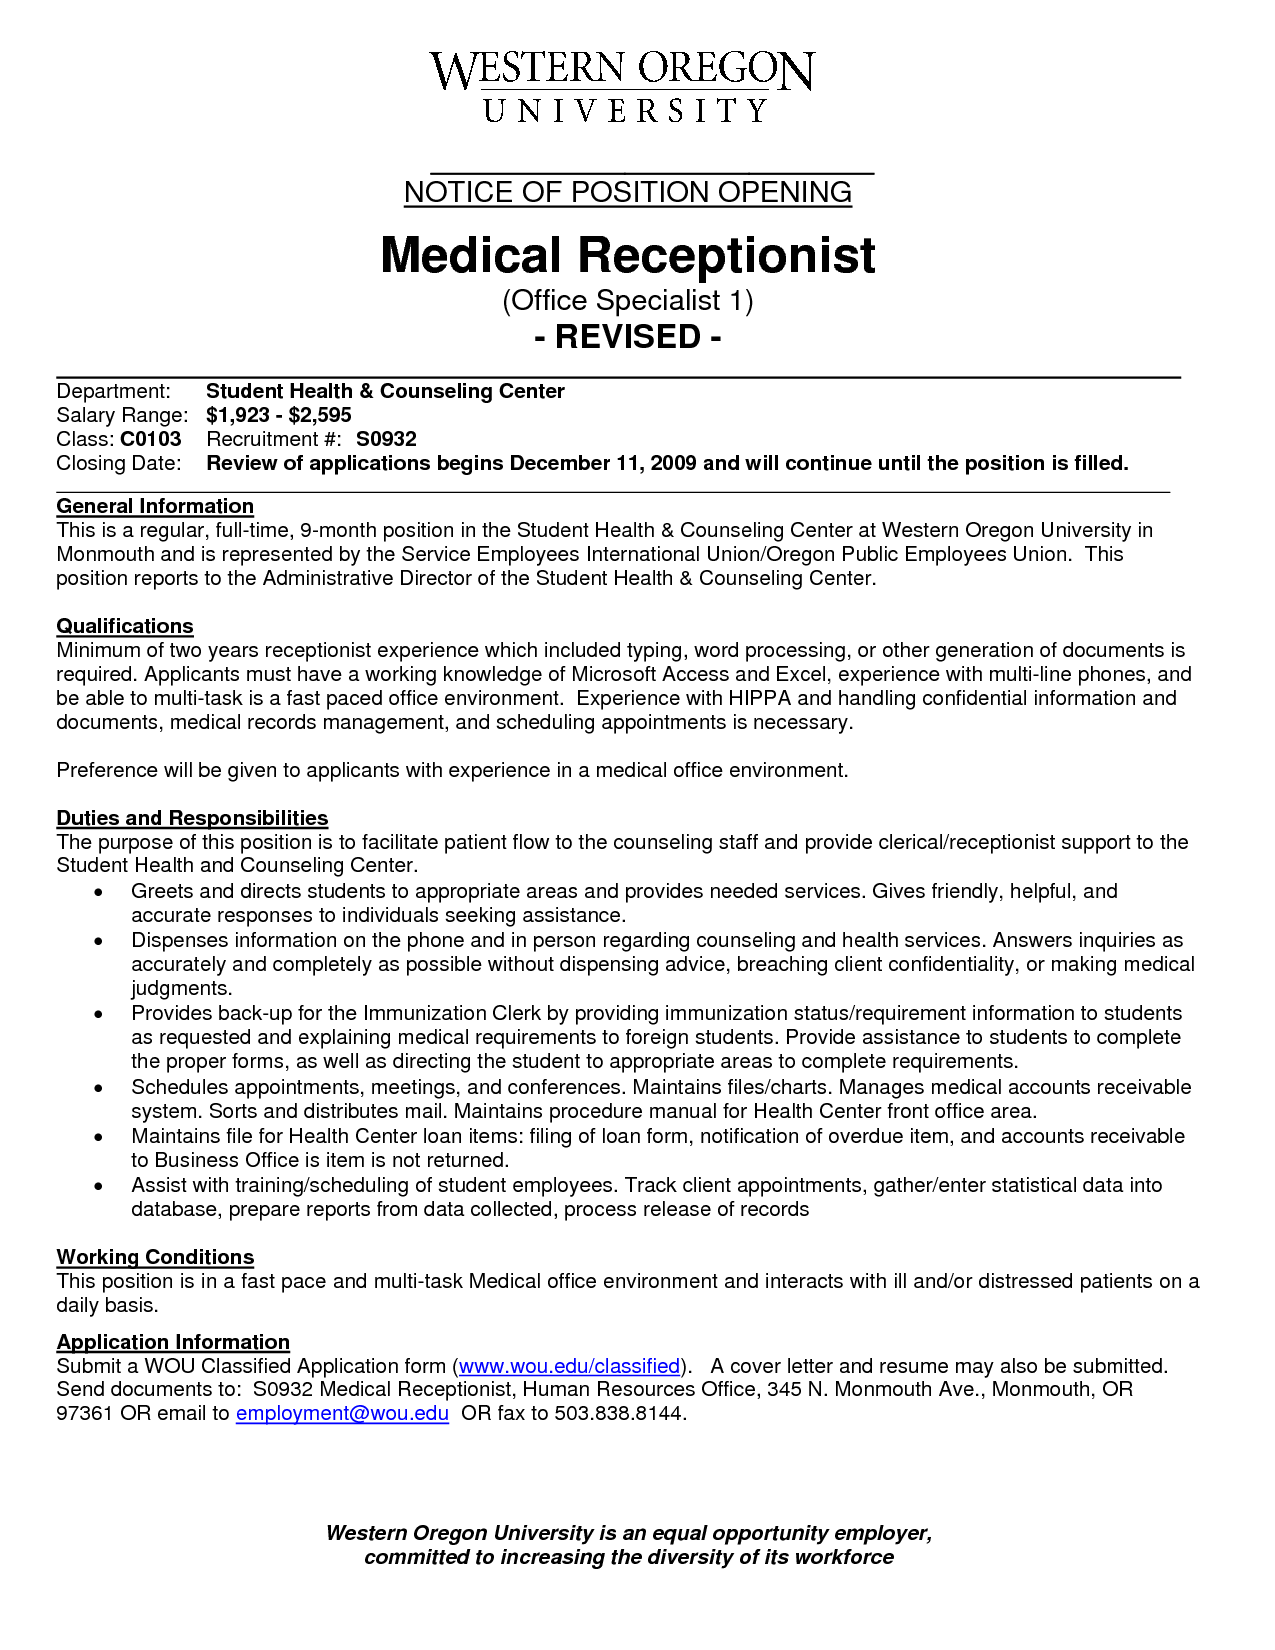 medical receptionist resume medical office receptionist resume examples - Medical Receptionist Resume Examples